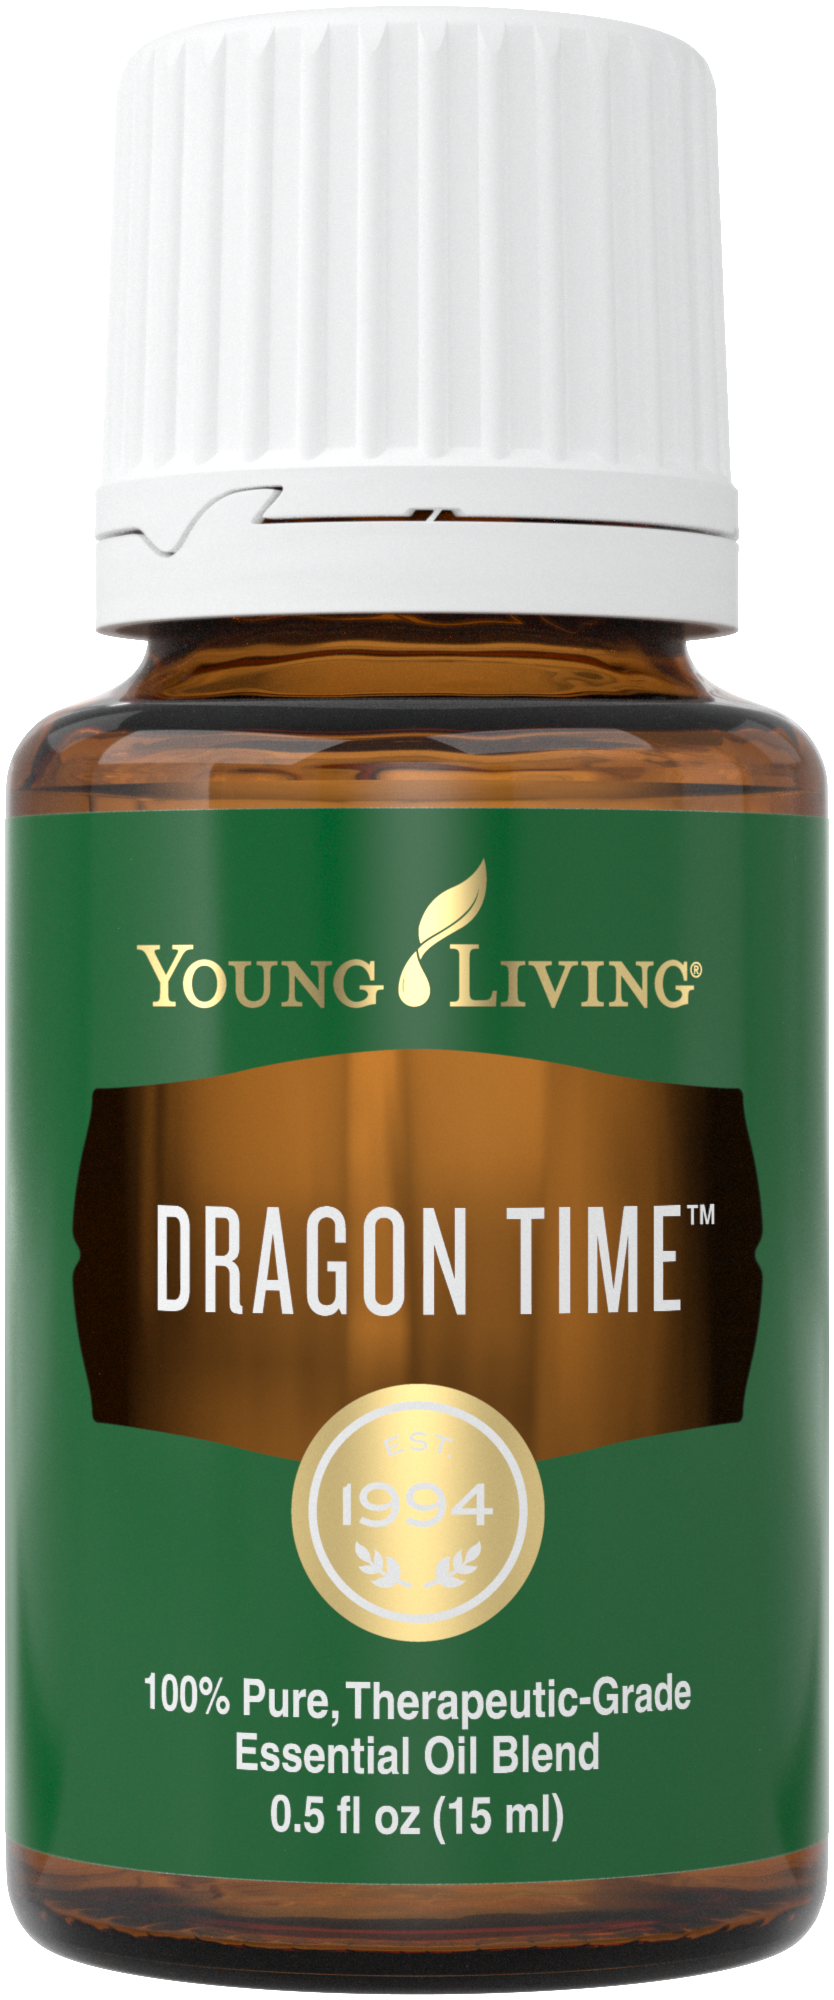 Dragon Time essential oil blend uses | Young Living